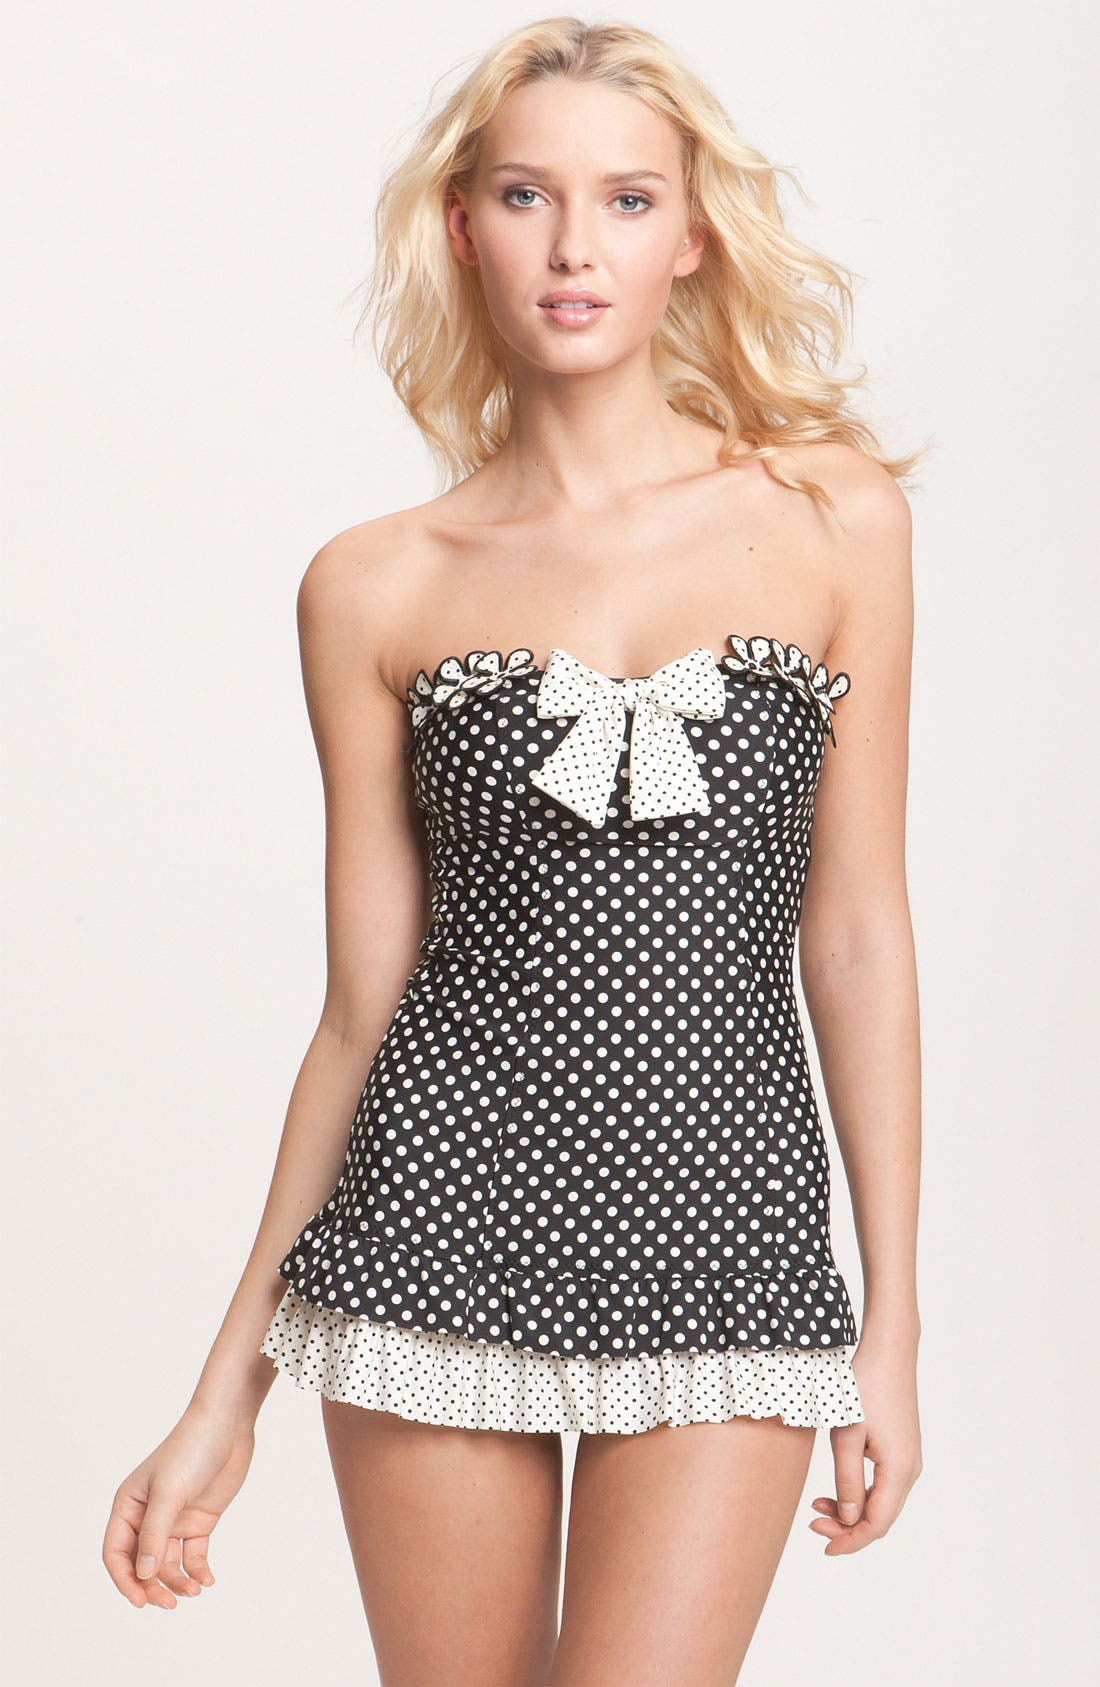 Alternate Image 1 Selected - Betsey Johnson 'Pinwheel' Skirted One Piece Swimsuit